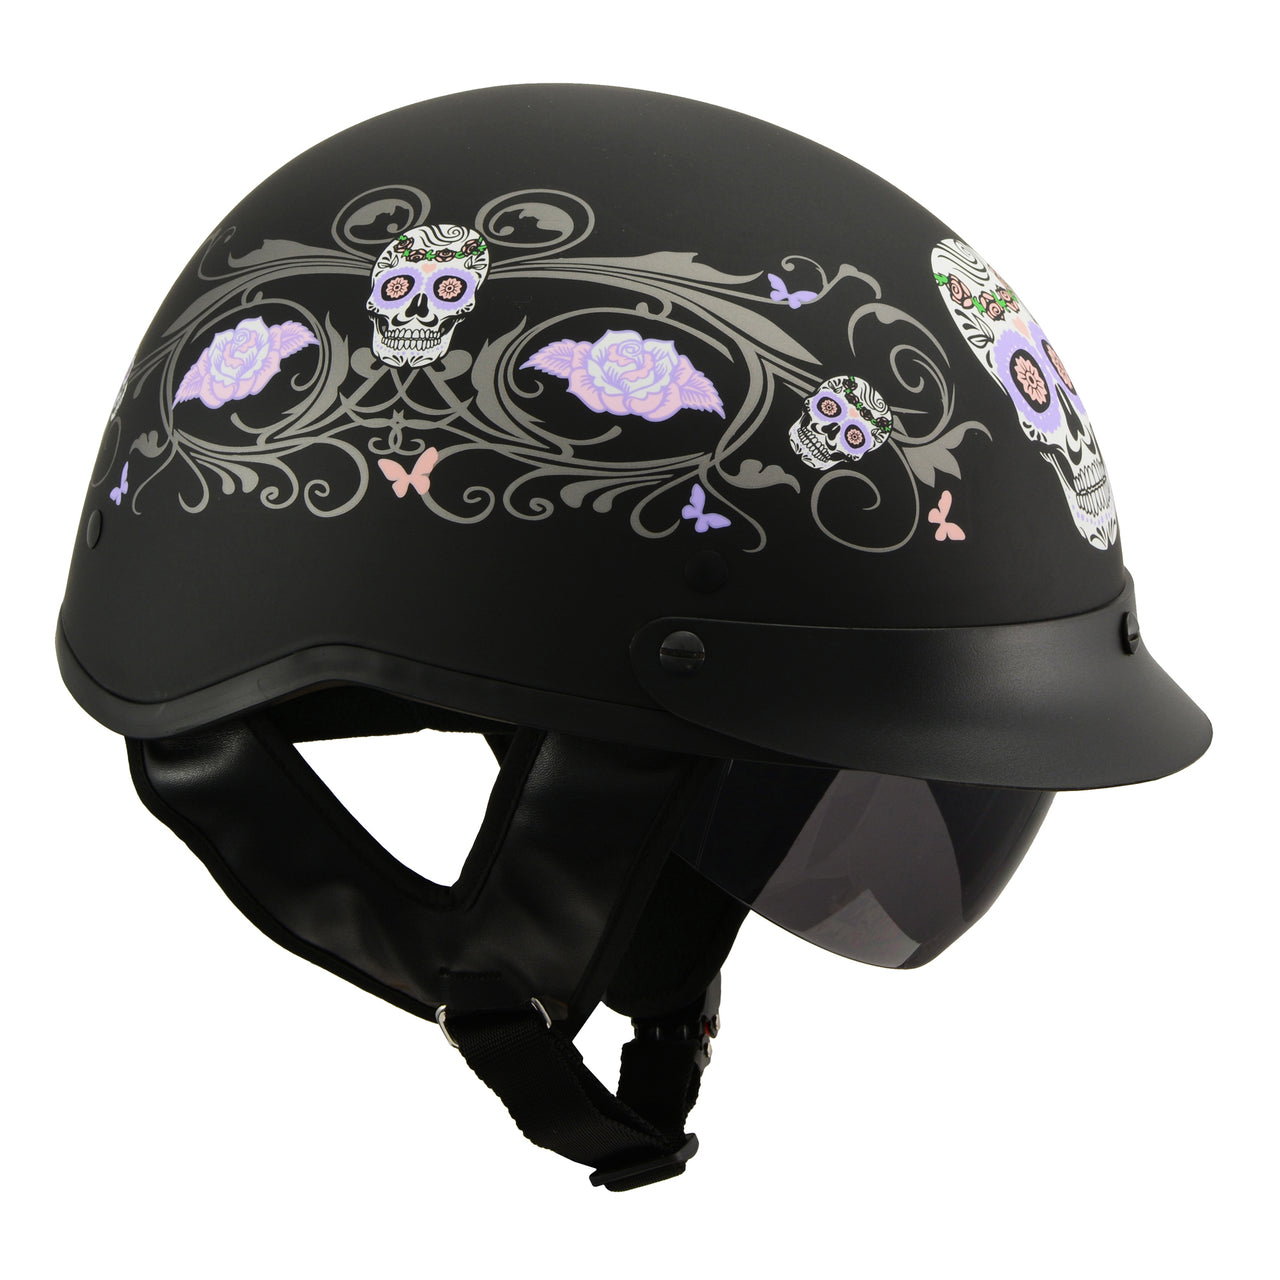 MPH DOT Helmet w/ Drop Sun Visor Sugar Skull Graphic Shiny Black - HighwayLeather